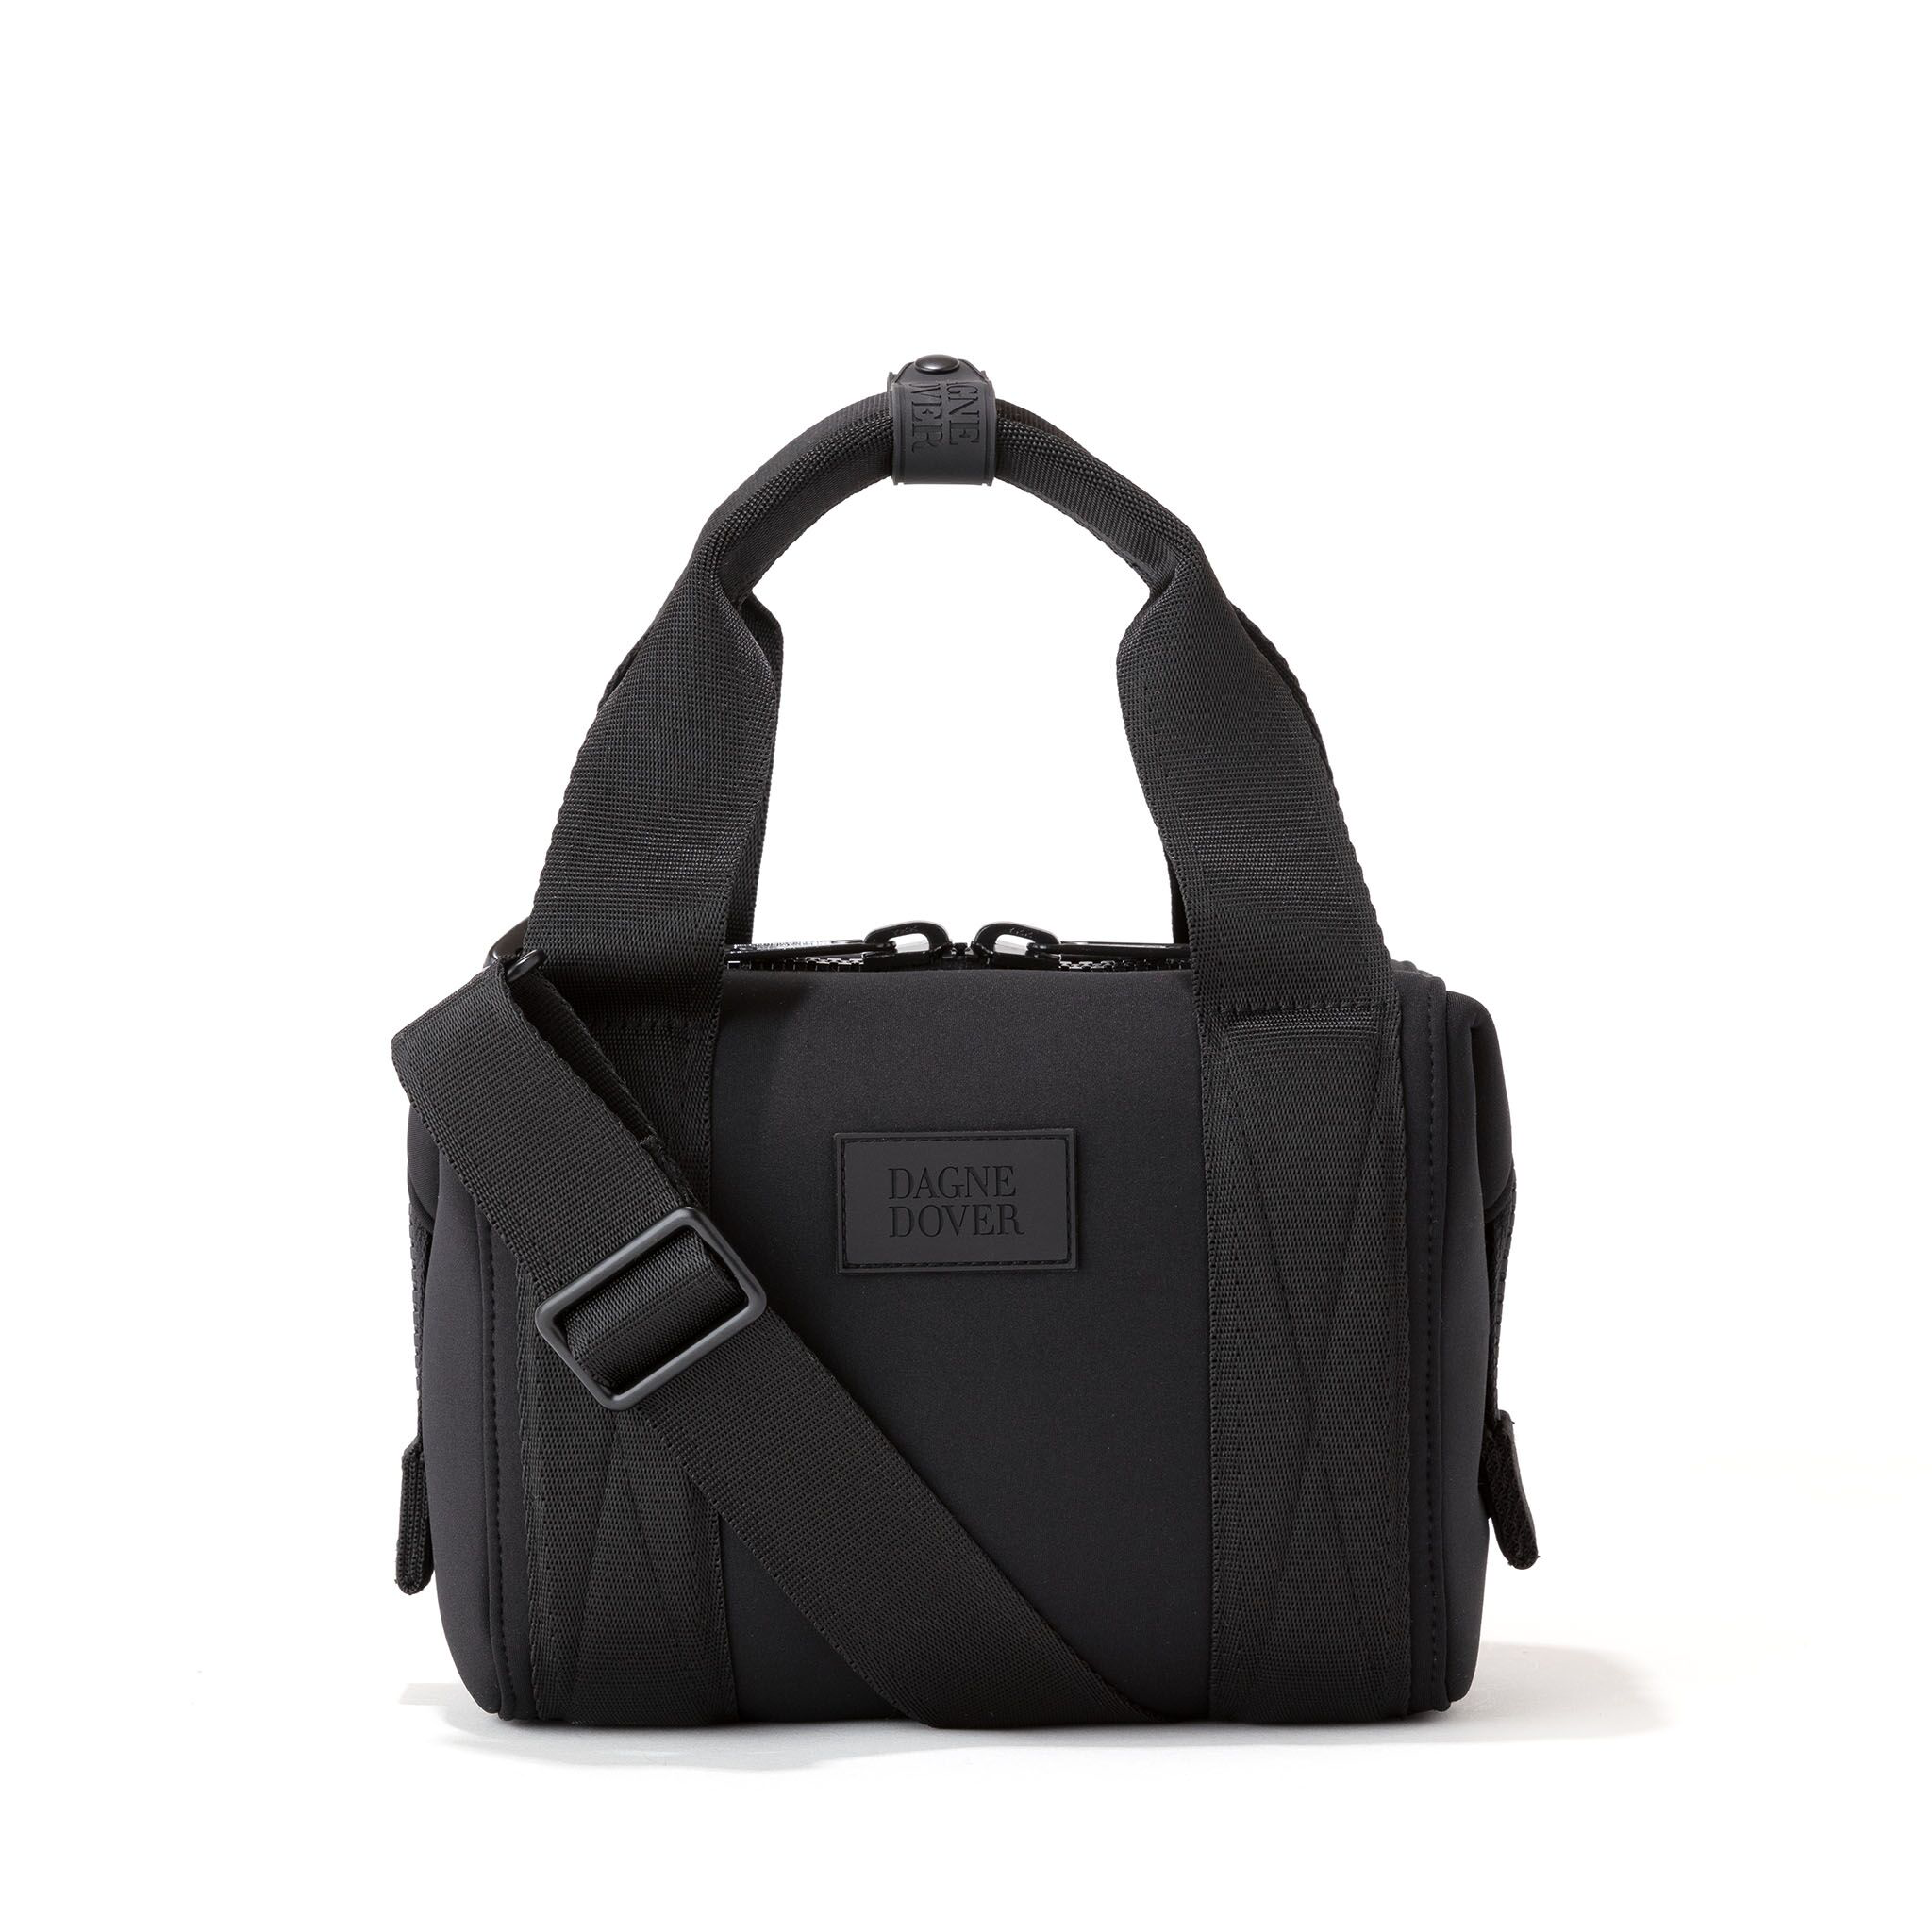 The Landon Carryall Duffle Bag travel product recommended by Beth Lawrence on Lifney.